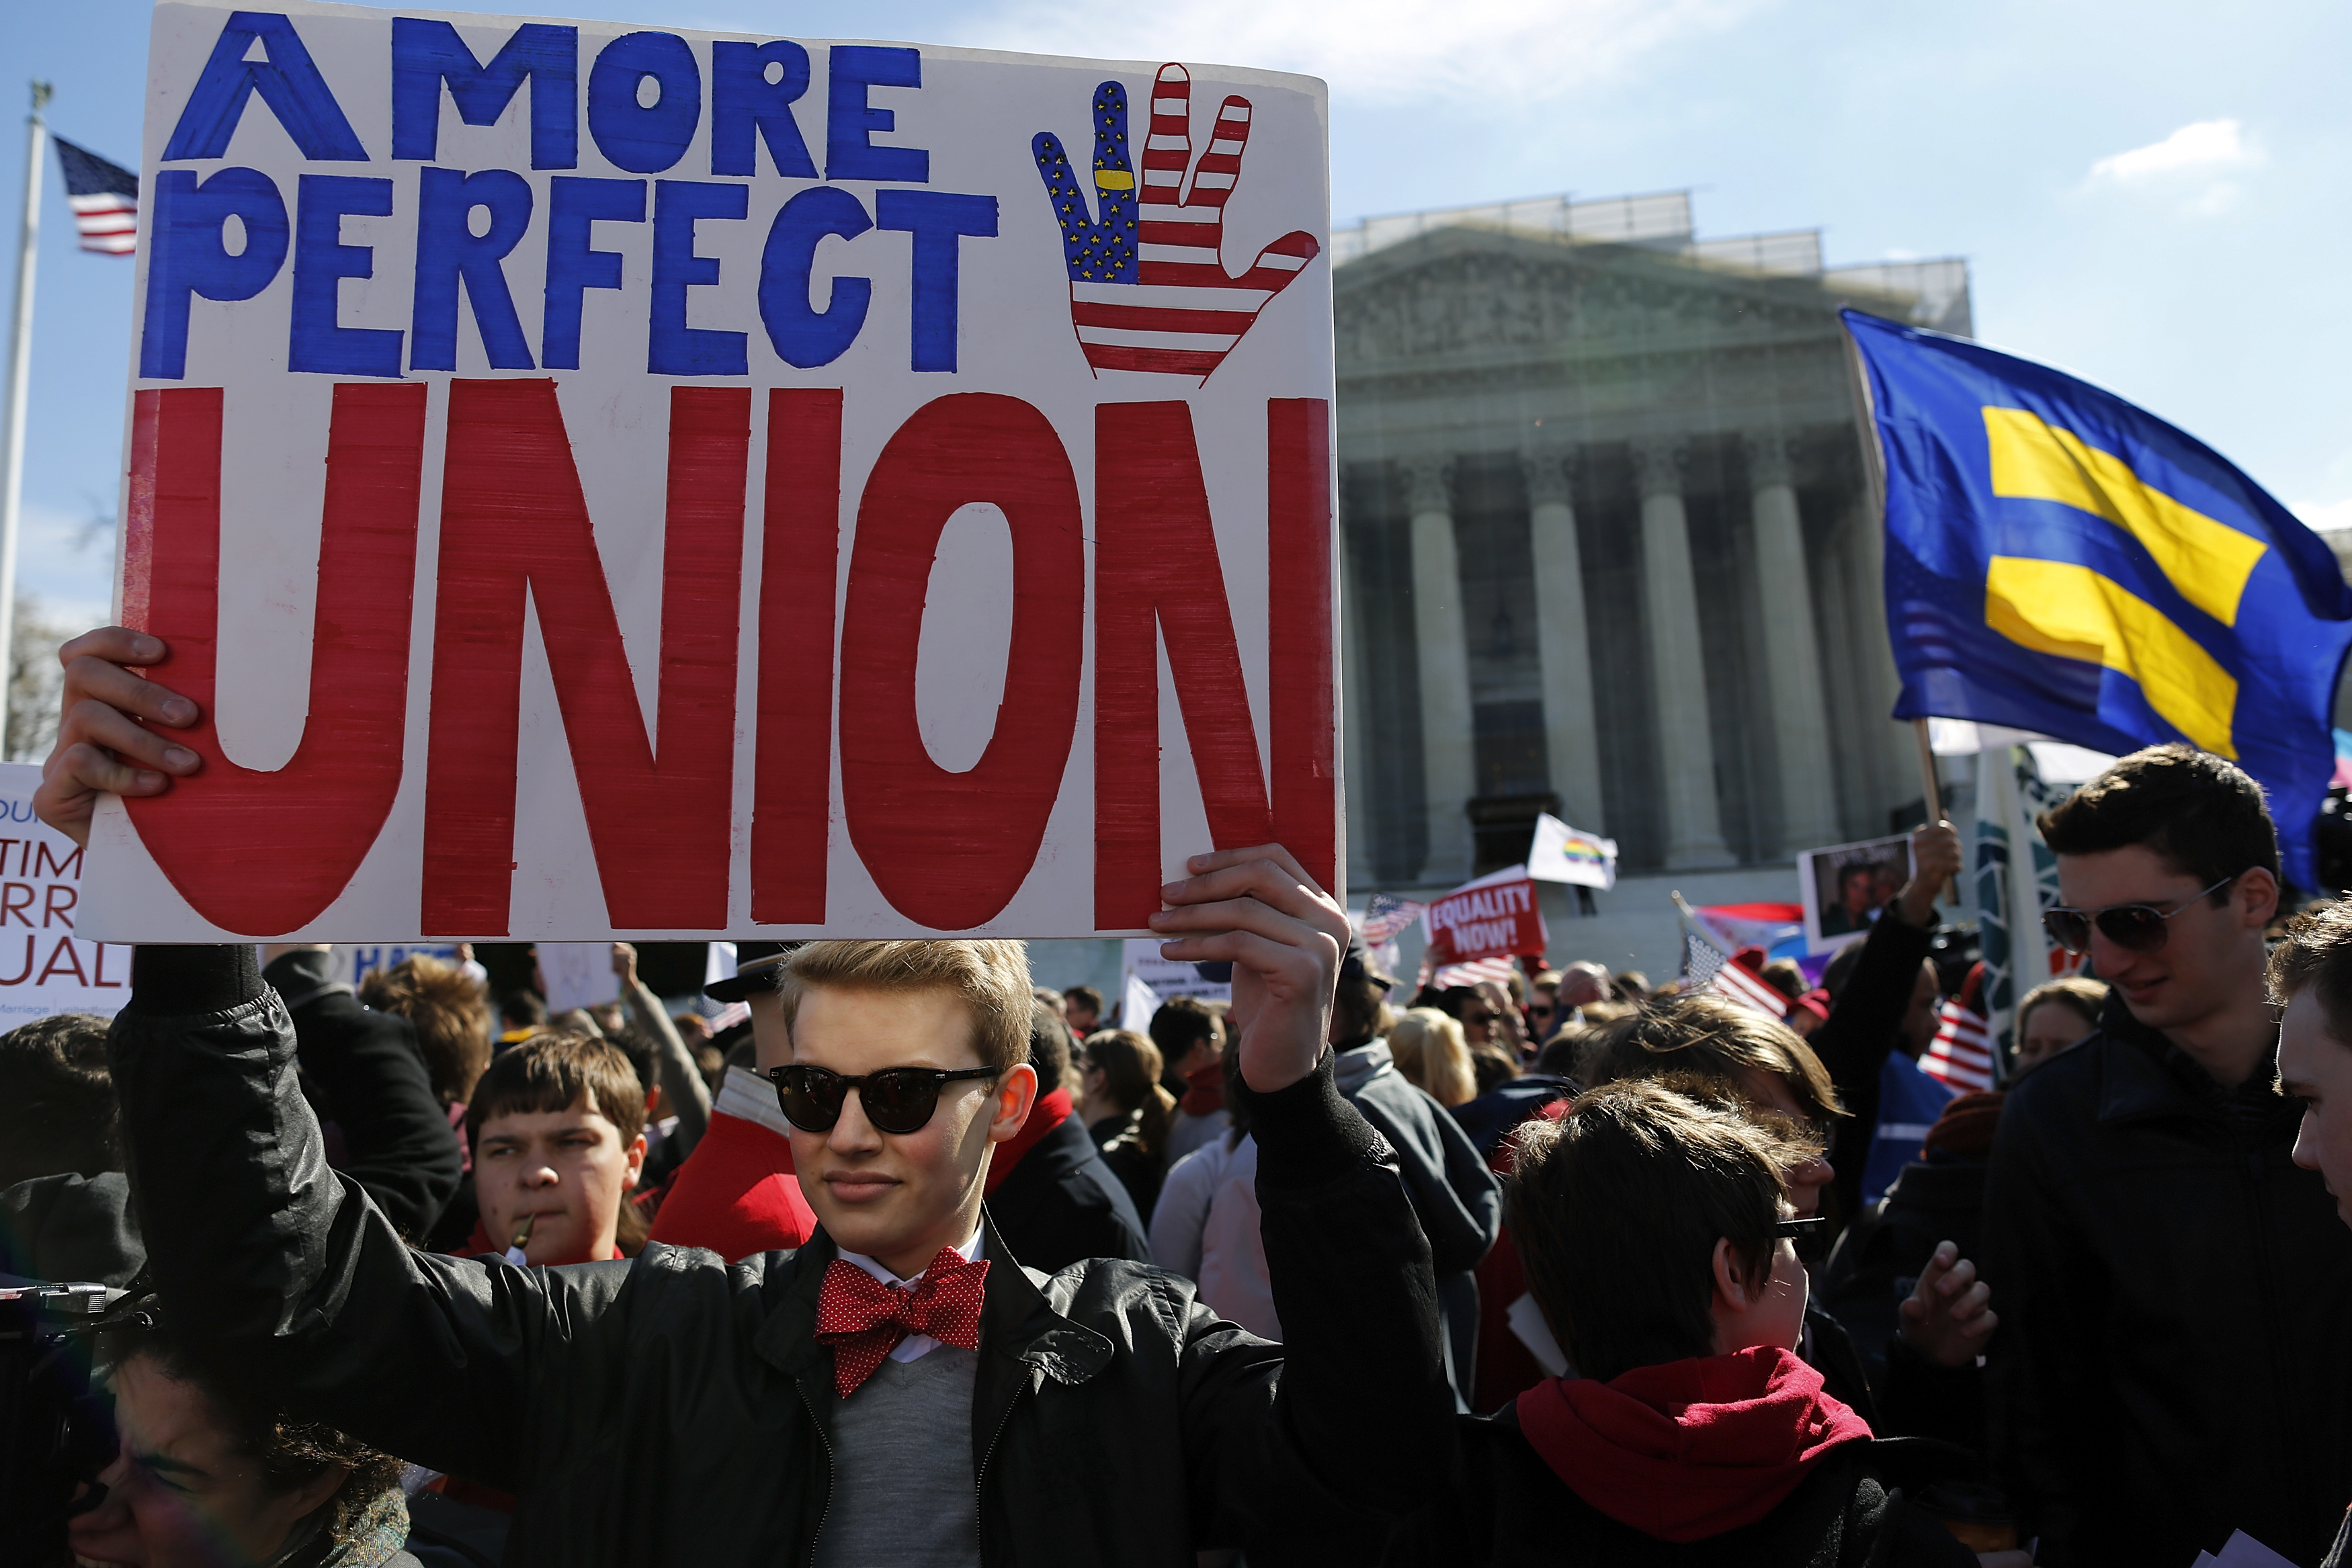 Protestors hold signs and flags as they rally against the Defense of Marriage Act in front of the U.S. Supreme Court in Washington